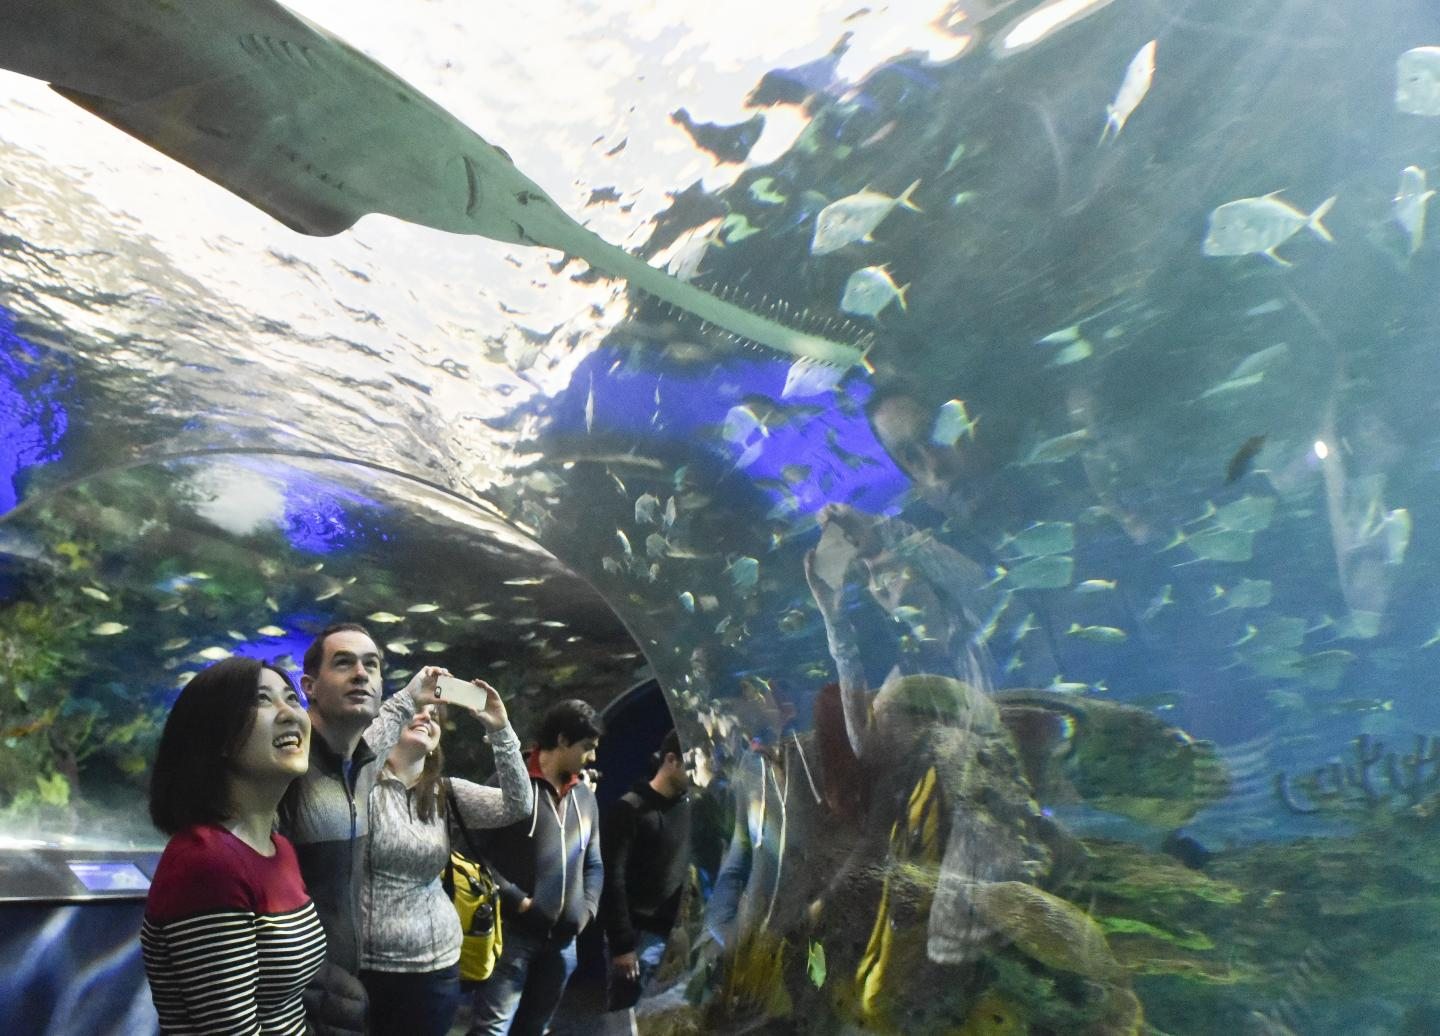 An experiential gift like concert tickets or passes to an aquarium, may help build a stronger relationship than giving a material item. Credit: Ken Jones